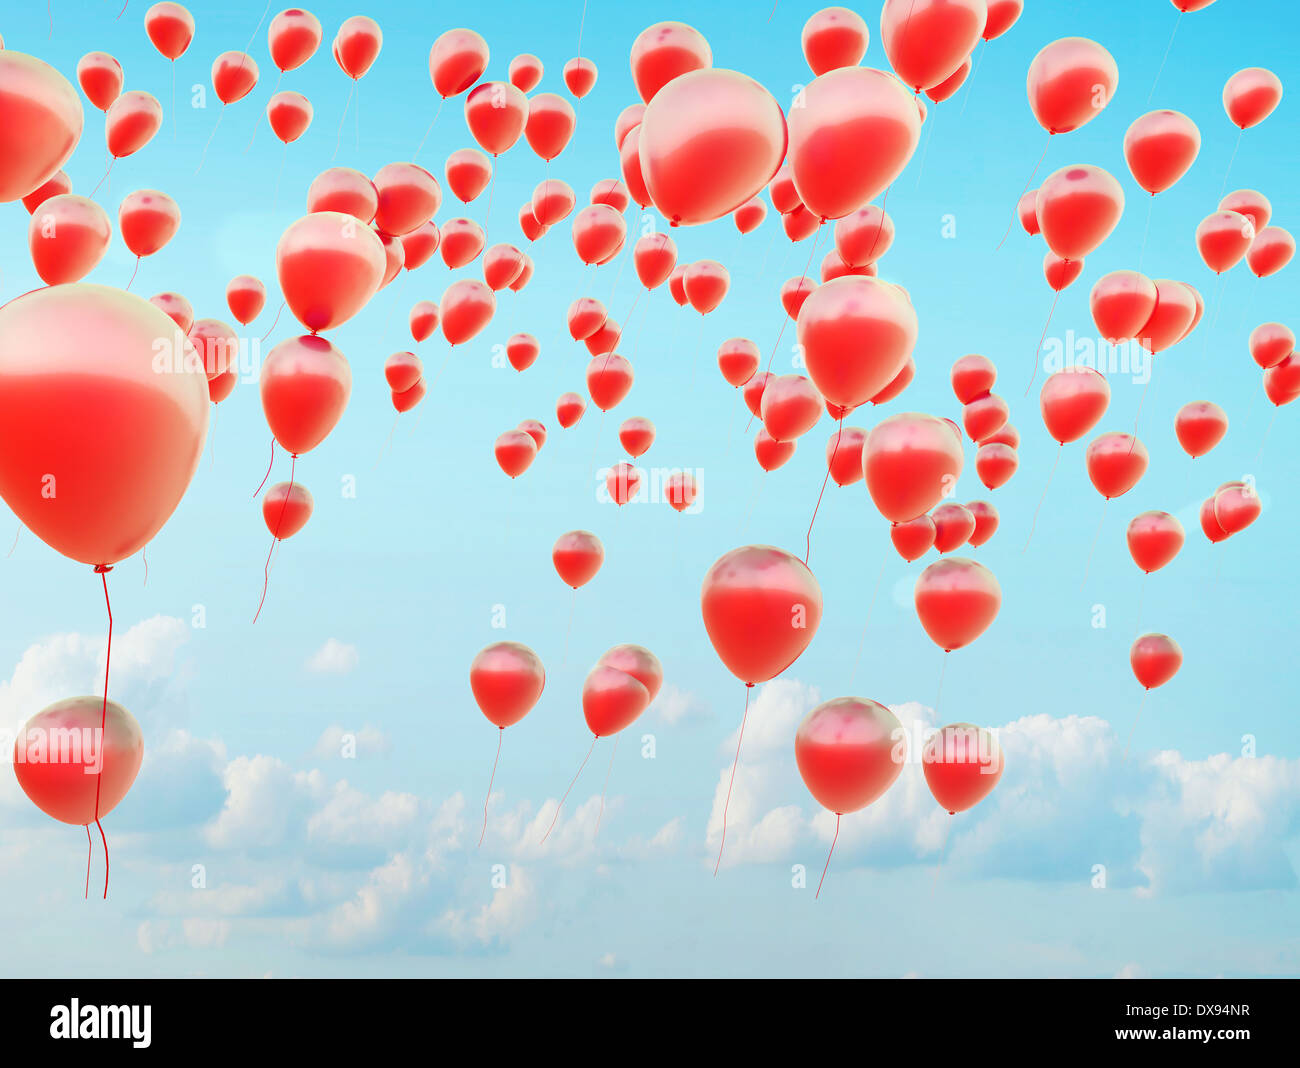 Colorful balloon stockfotos colorful balloon bilder alamy for Kleine fliegen blumen